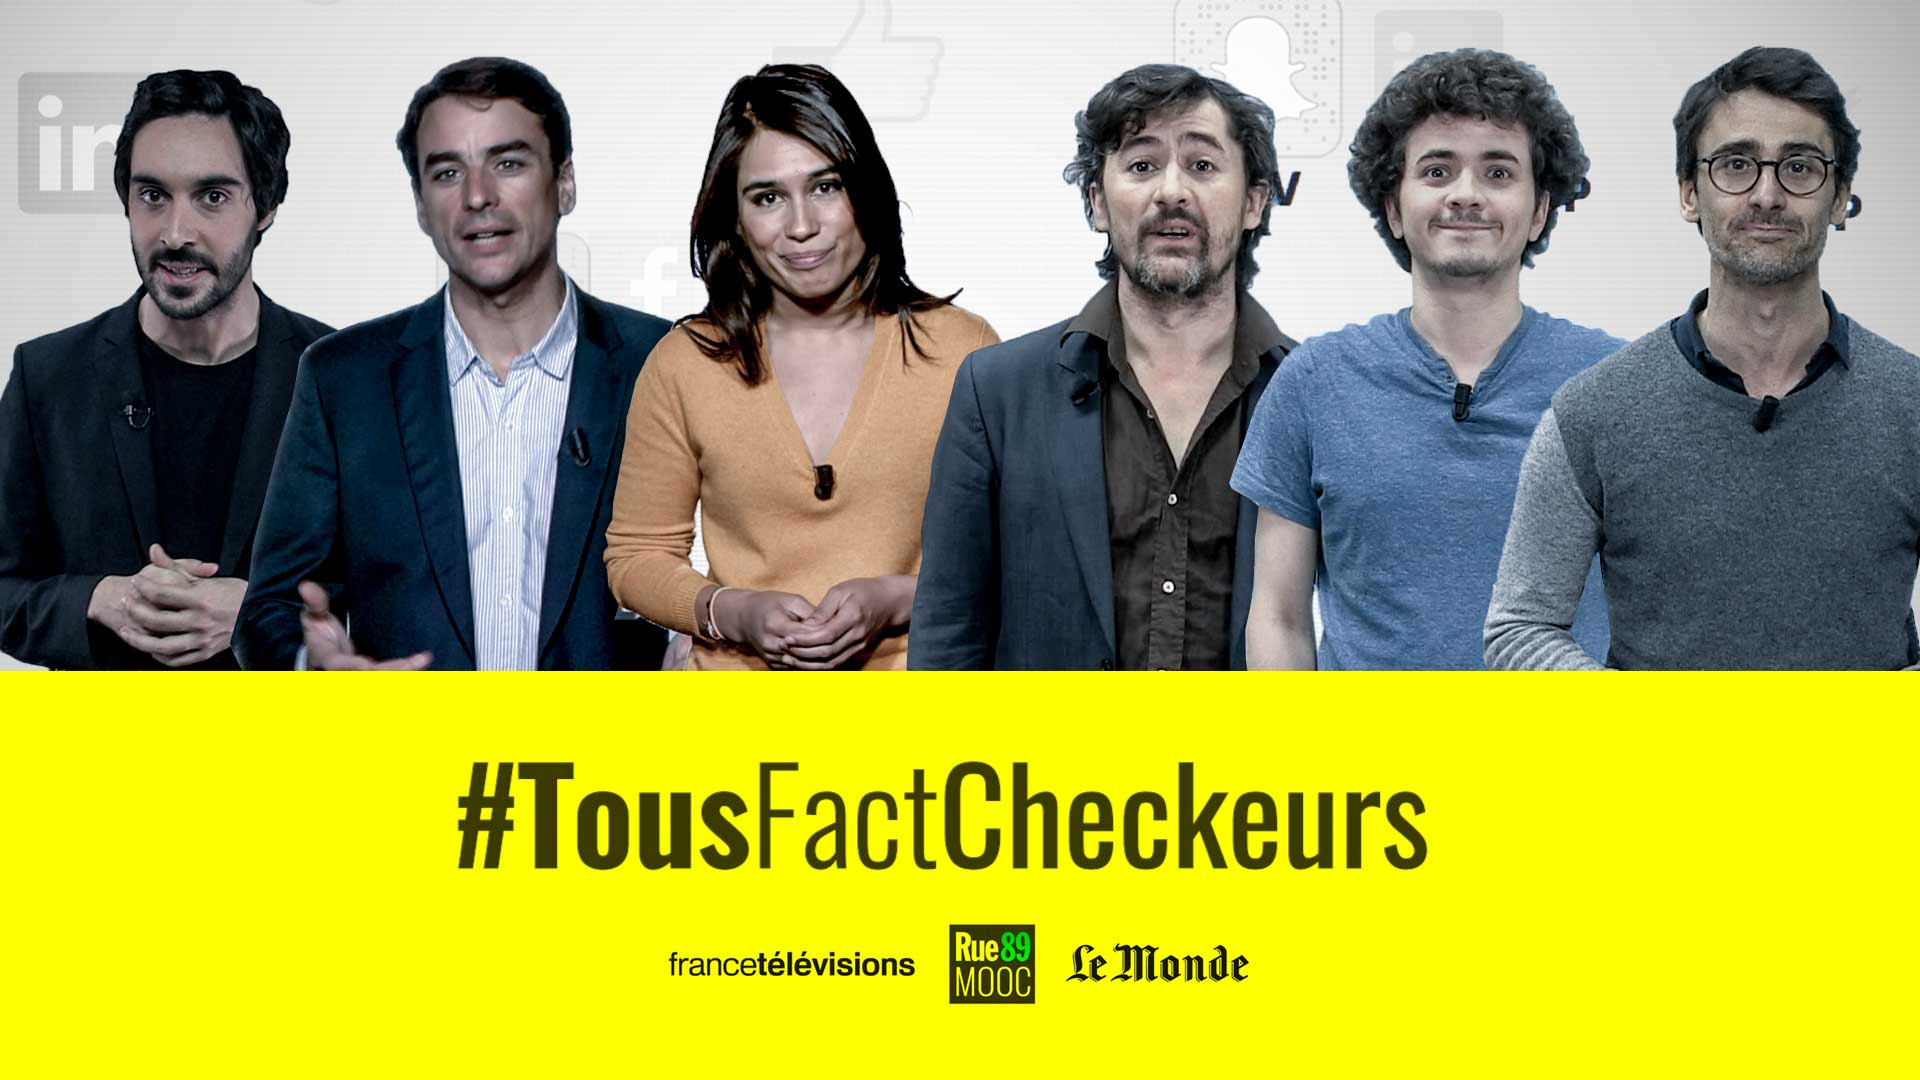 fact-checkers-fake